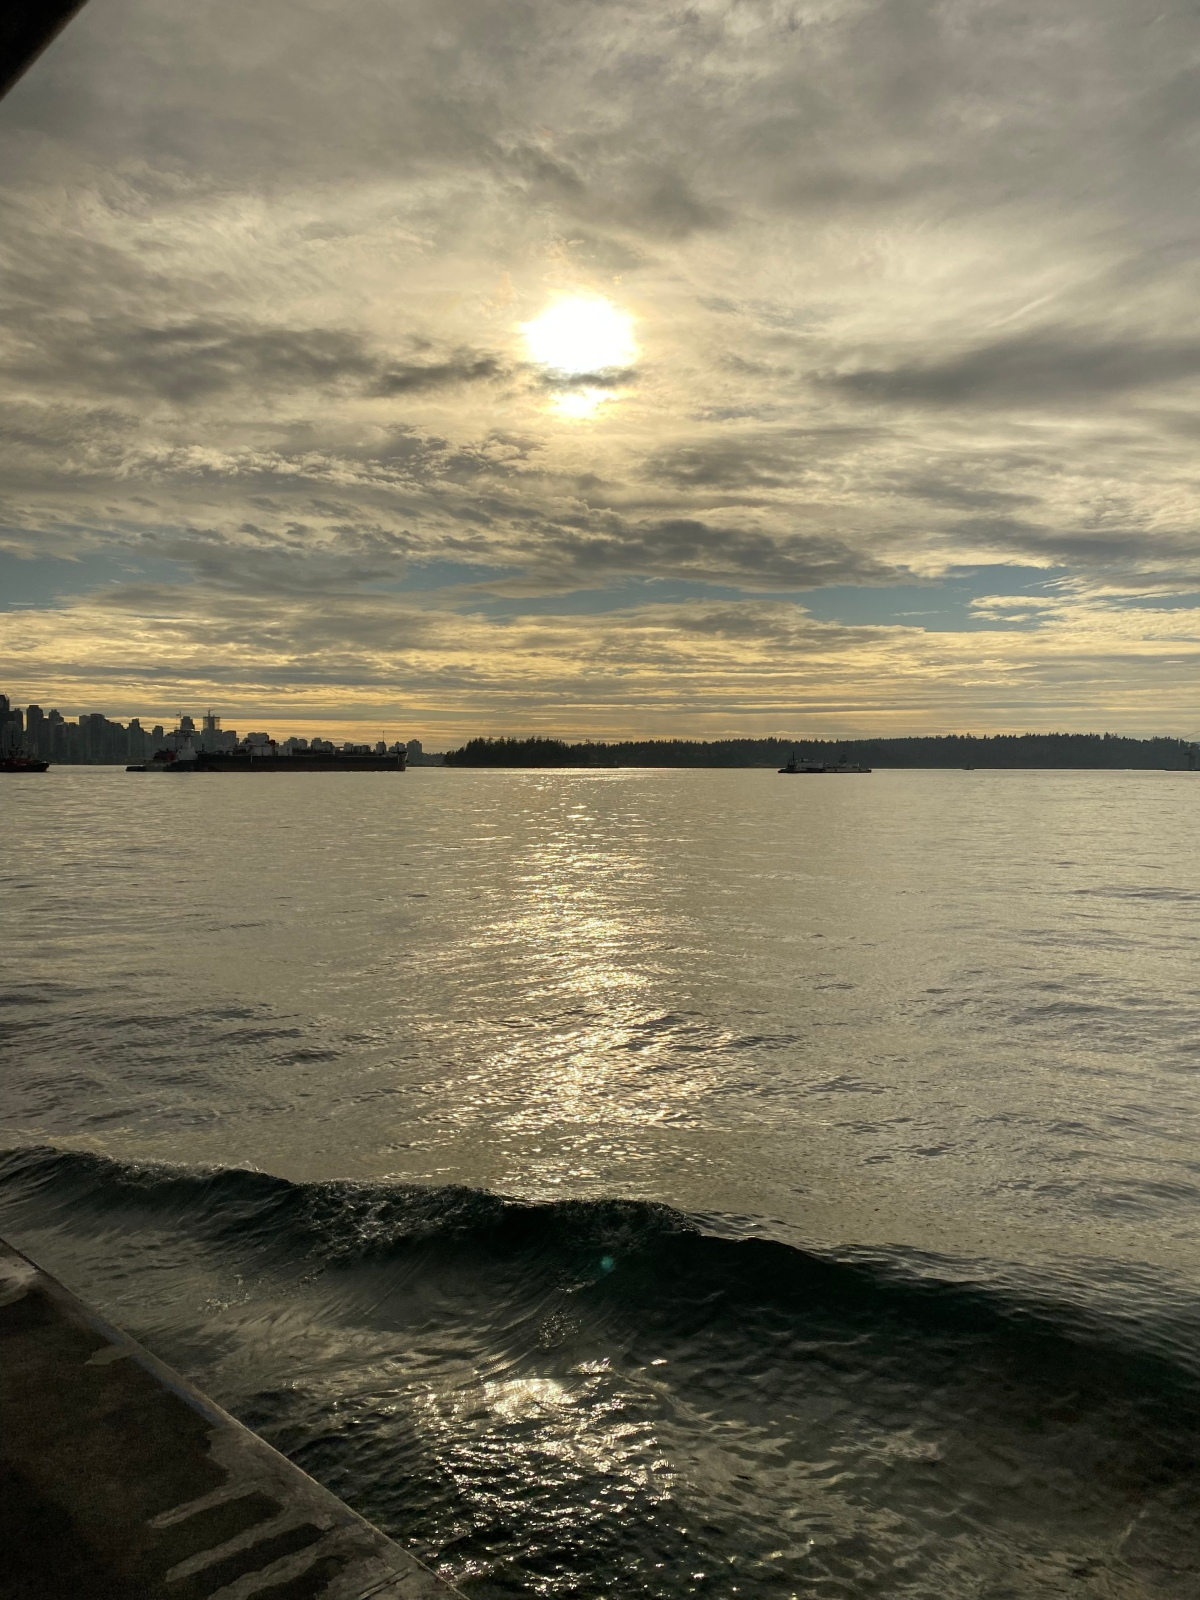 Photo Of The Day: Sunset Across TheWater